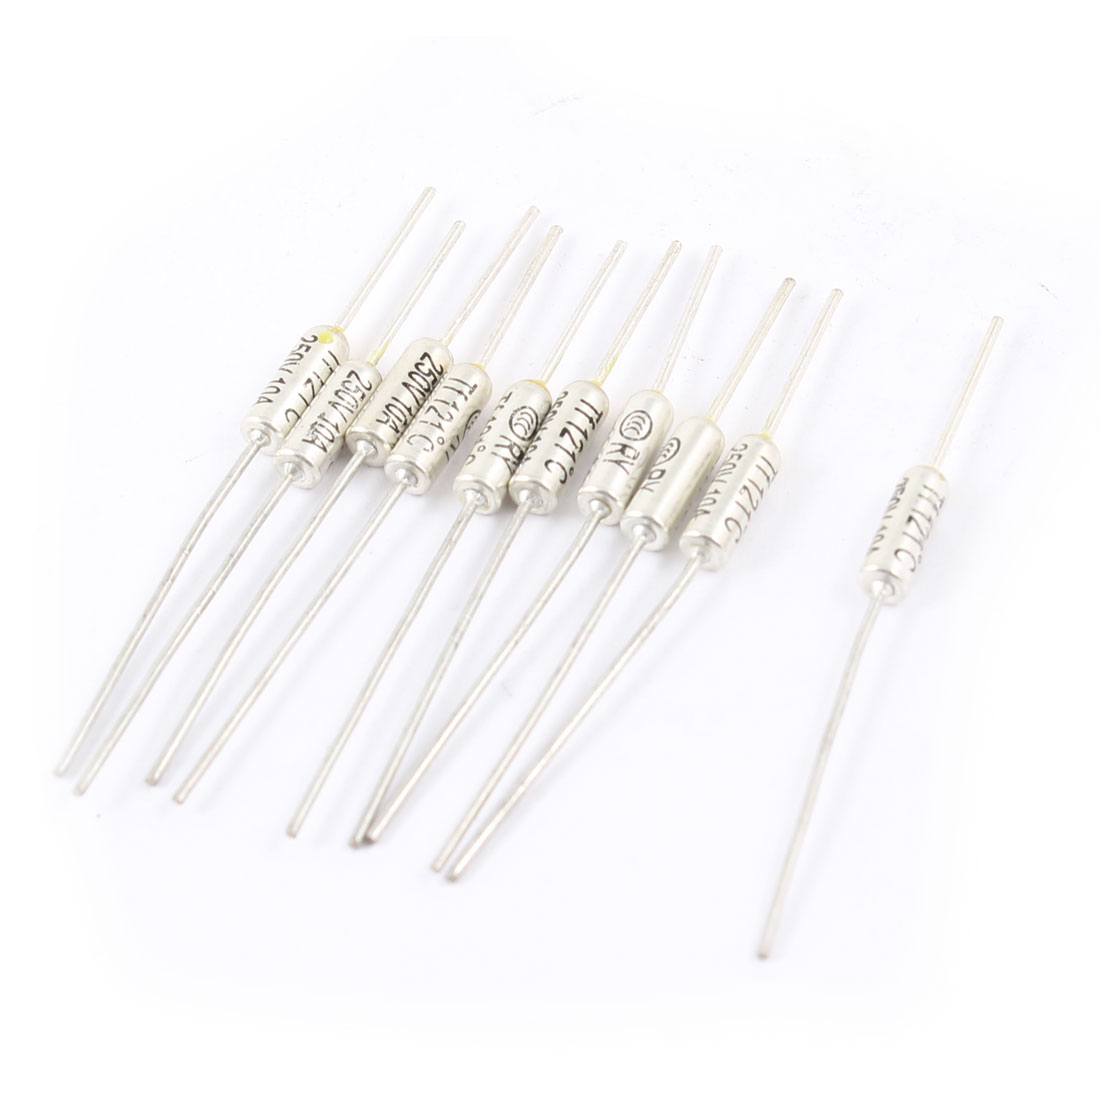 10Pcs Electronic Component Metal Leads 250V 10A 121C TF Thermal Fuse